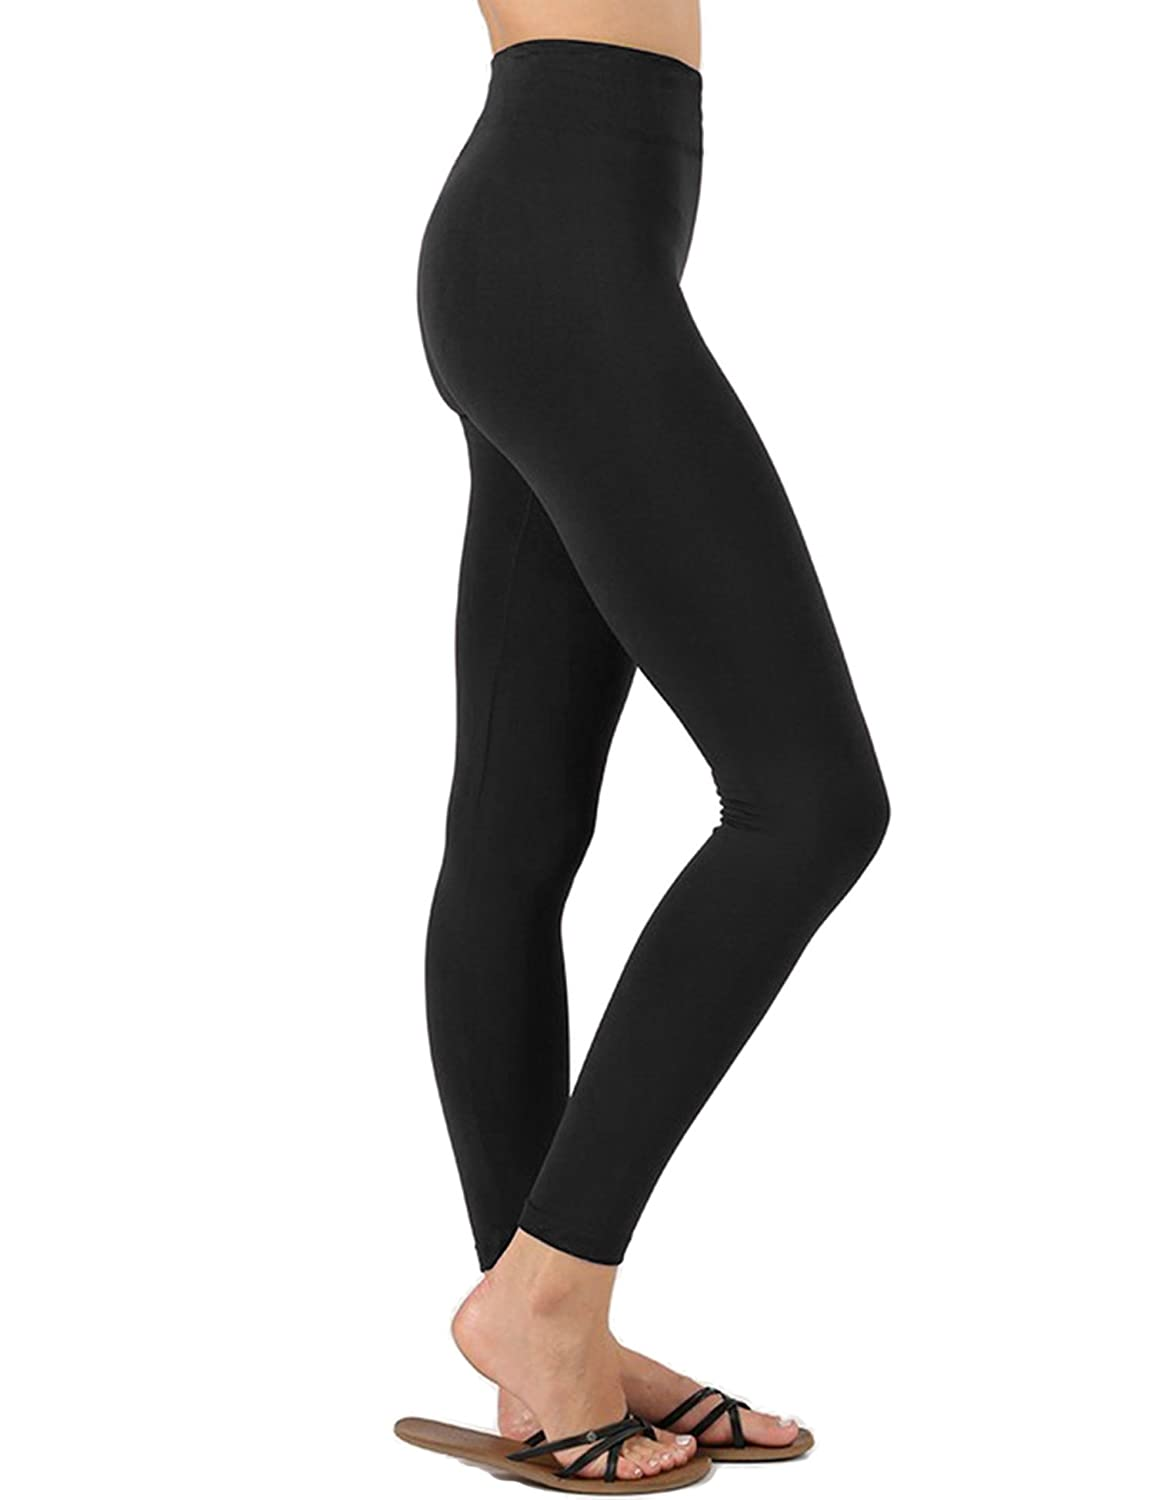 KOGMO Womens Premium Warm Fleece Lined Leggings with High Waist (Multi Colors)